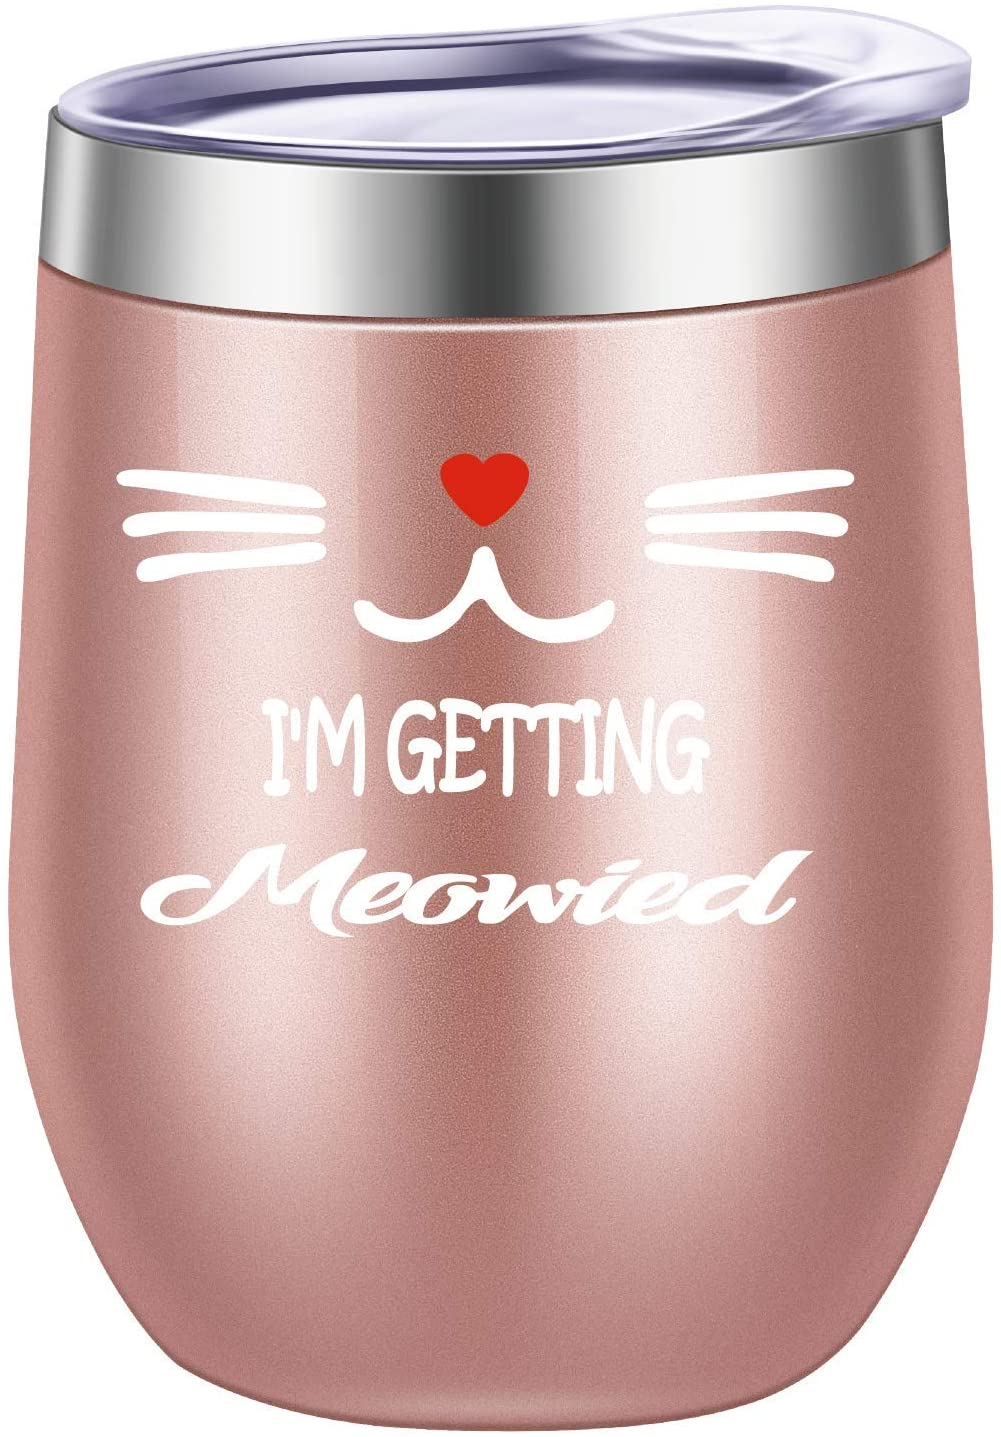 Pufuny Im Getting Meowied Funny Wine Glass,Unique Wedding Gift Idea for Fiancee,Bride,Bridal Shower Gifts,Engagement Party,Christmas Gifts for Women 12 oz Rose Gold